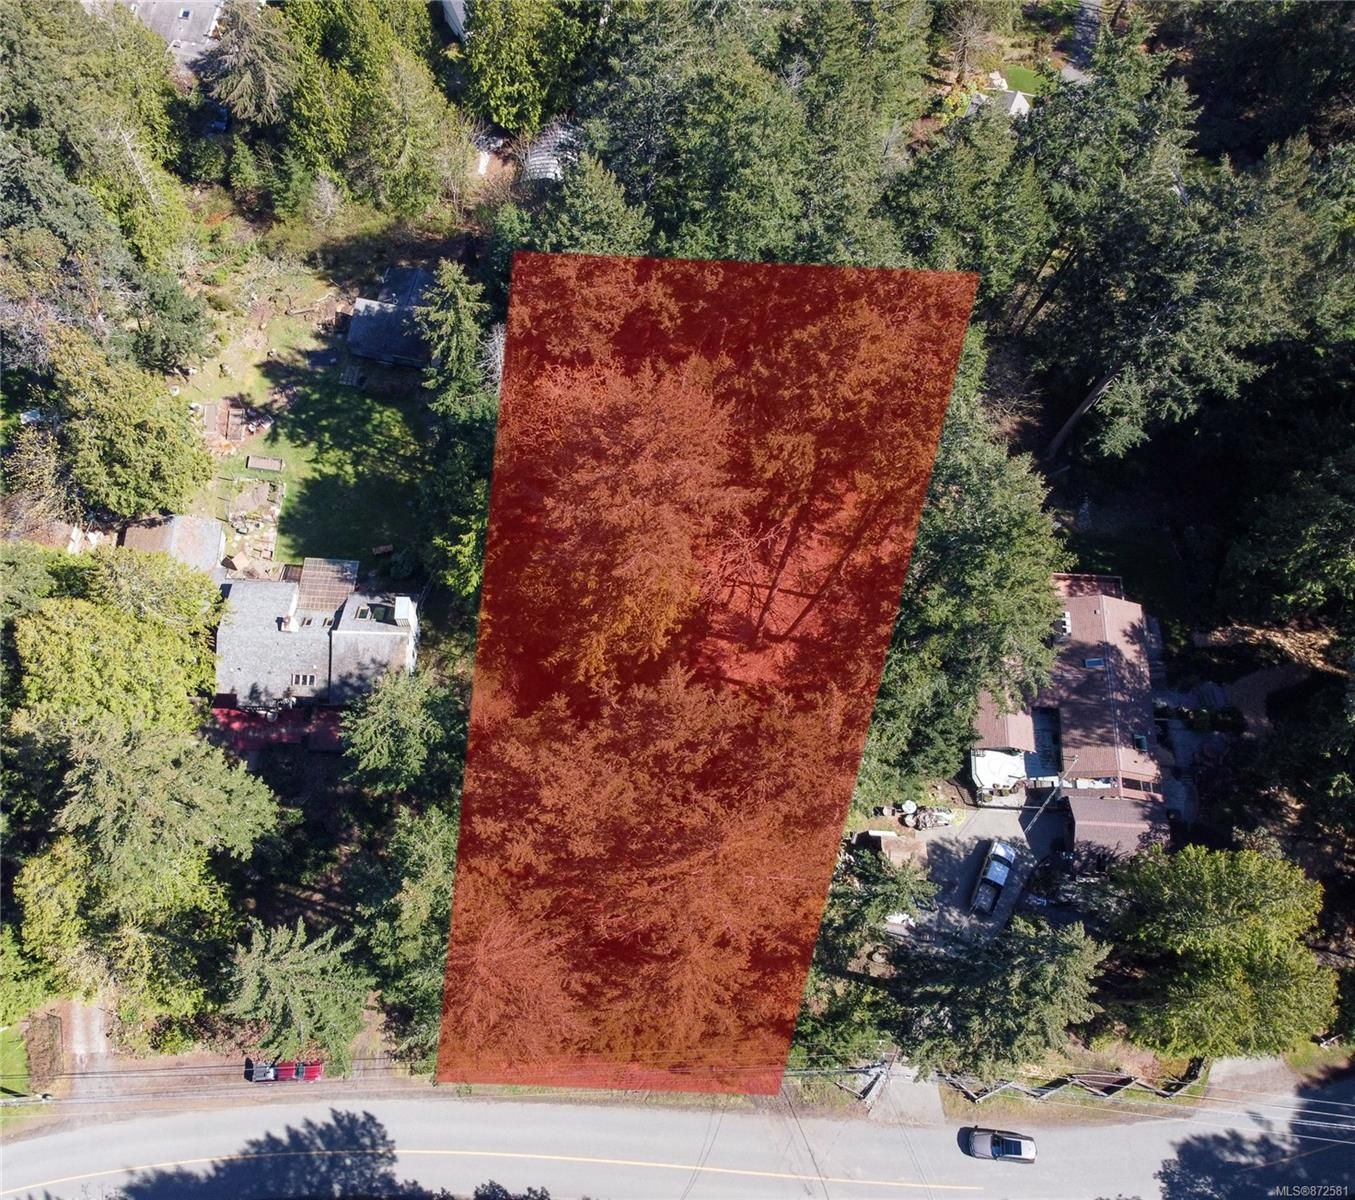 Main Photo: Lot 19 Willis Point Rd in : CS Willis Point Land for sale (Central Saanich)  : MLS®# 872581